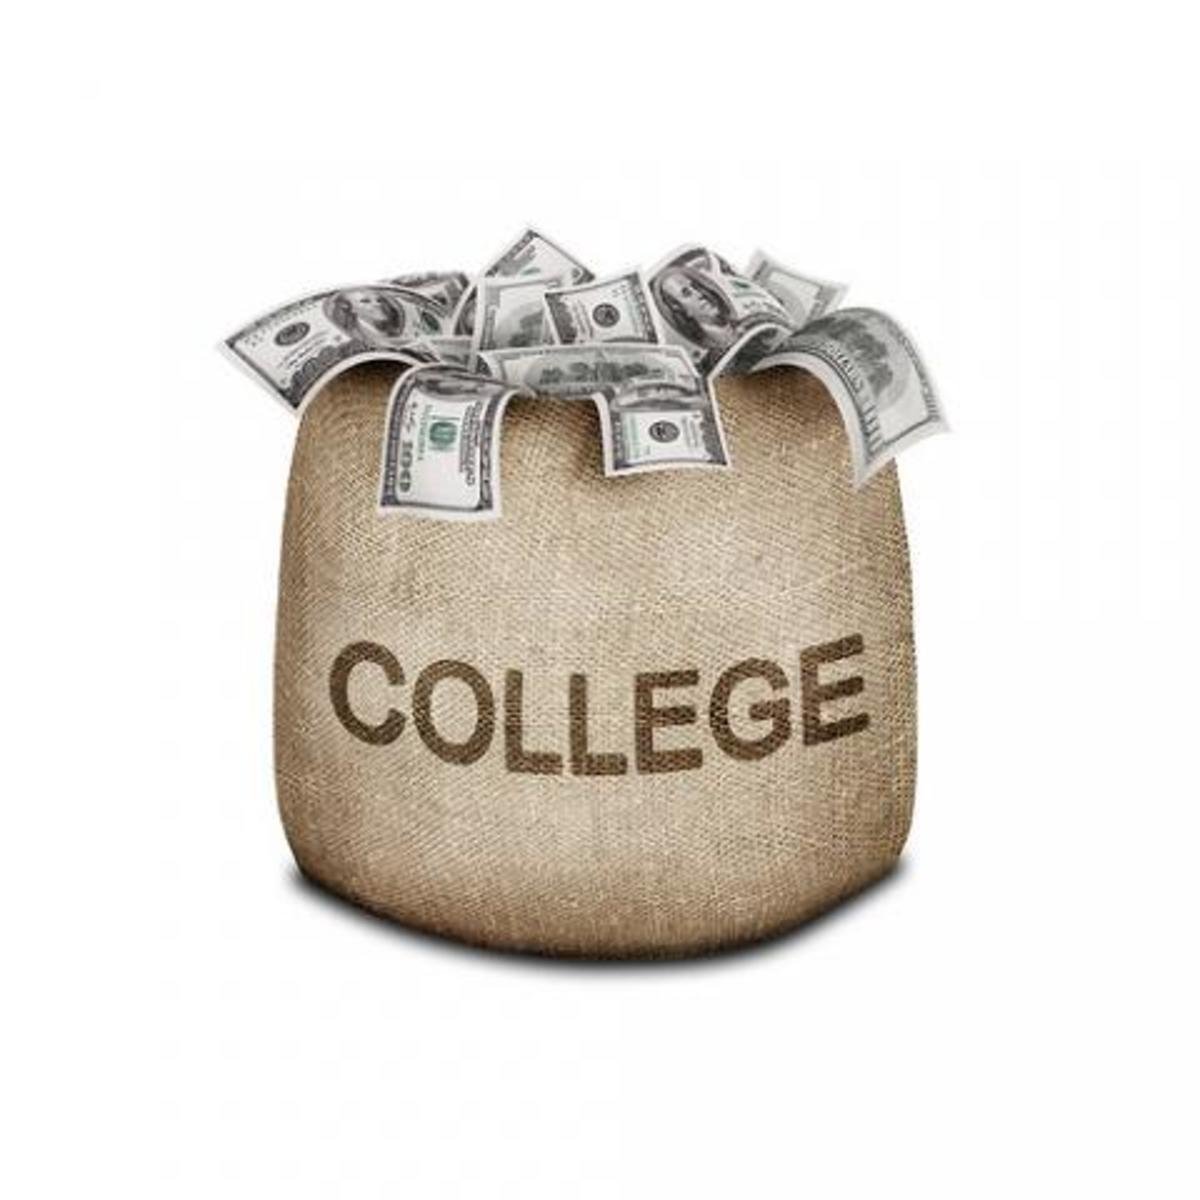 3 Small Ways to Save Money at College